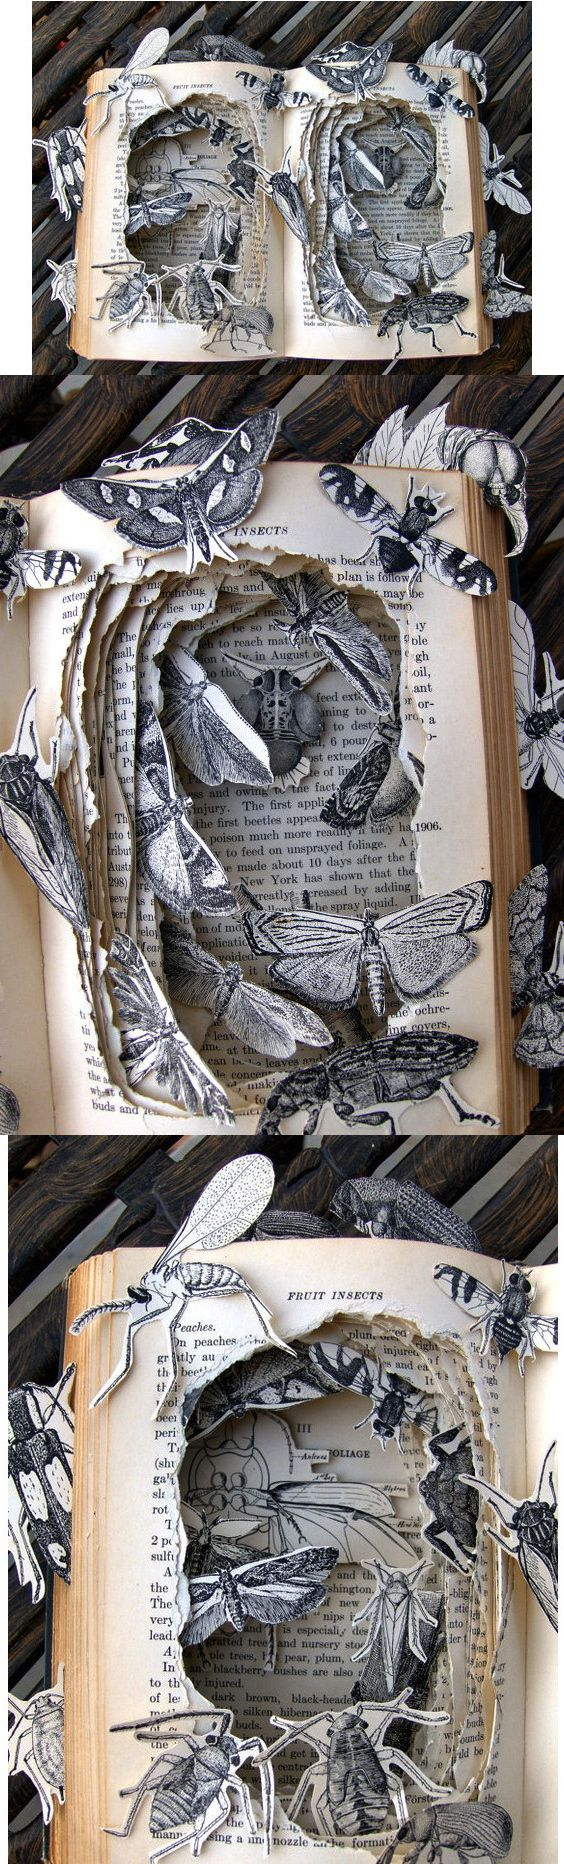 "Kelly Campbell, Mayberry's Insects, art, sculpture, paper craft, book art, book sculpture: ""Por un mundo lleno de mariposas"""